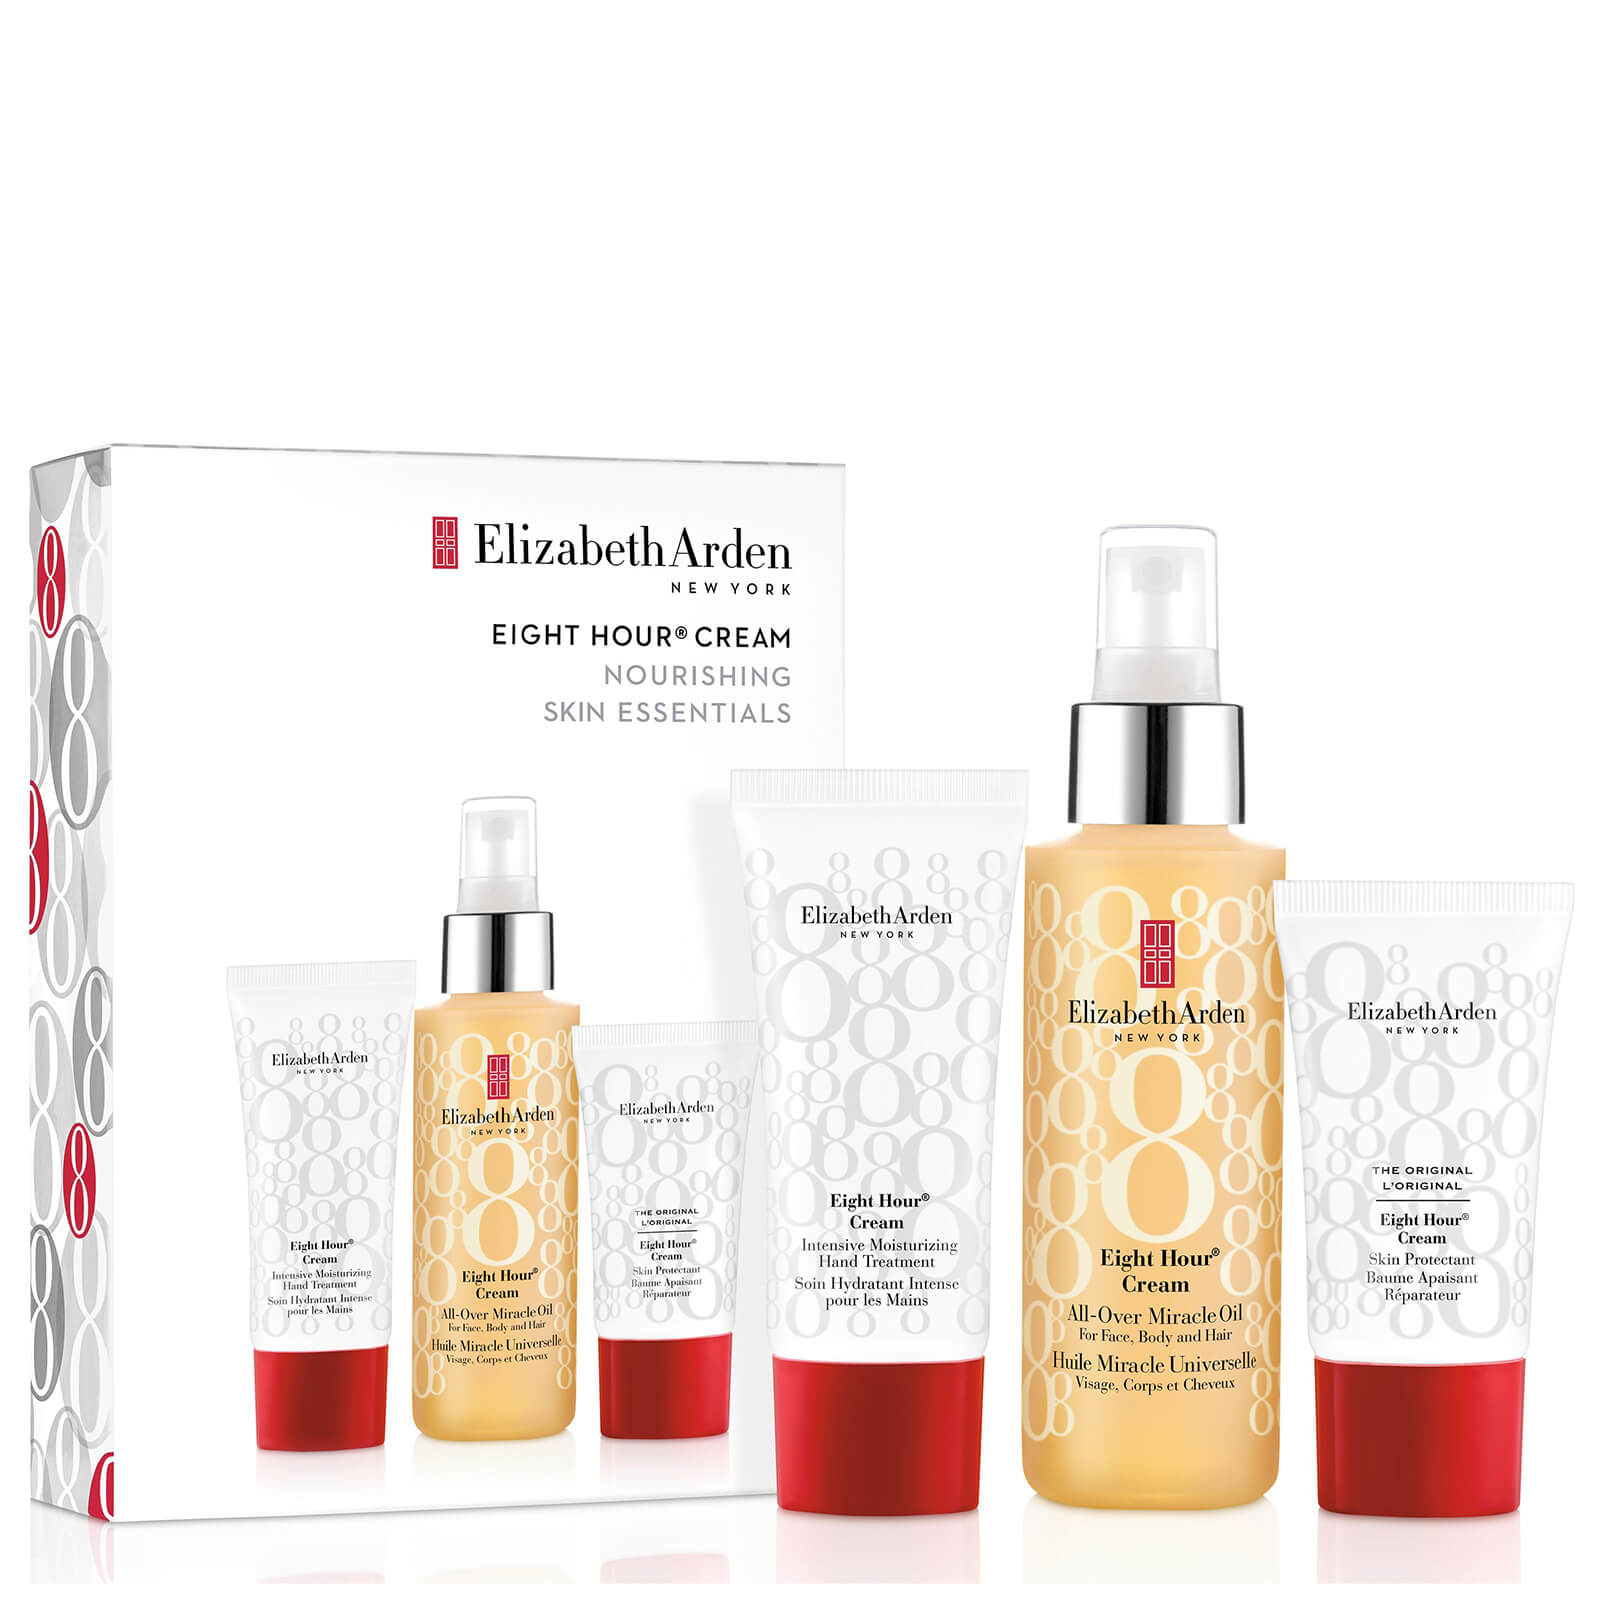 7054b67335f Elizabeth Arden Eight Hour Miracle Oil Gift Set (Worth 47.00 ...